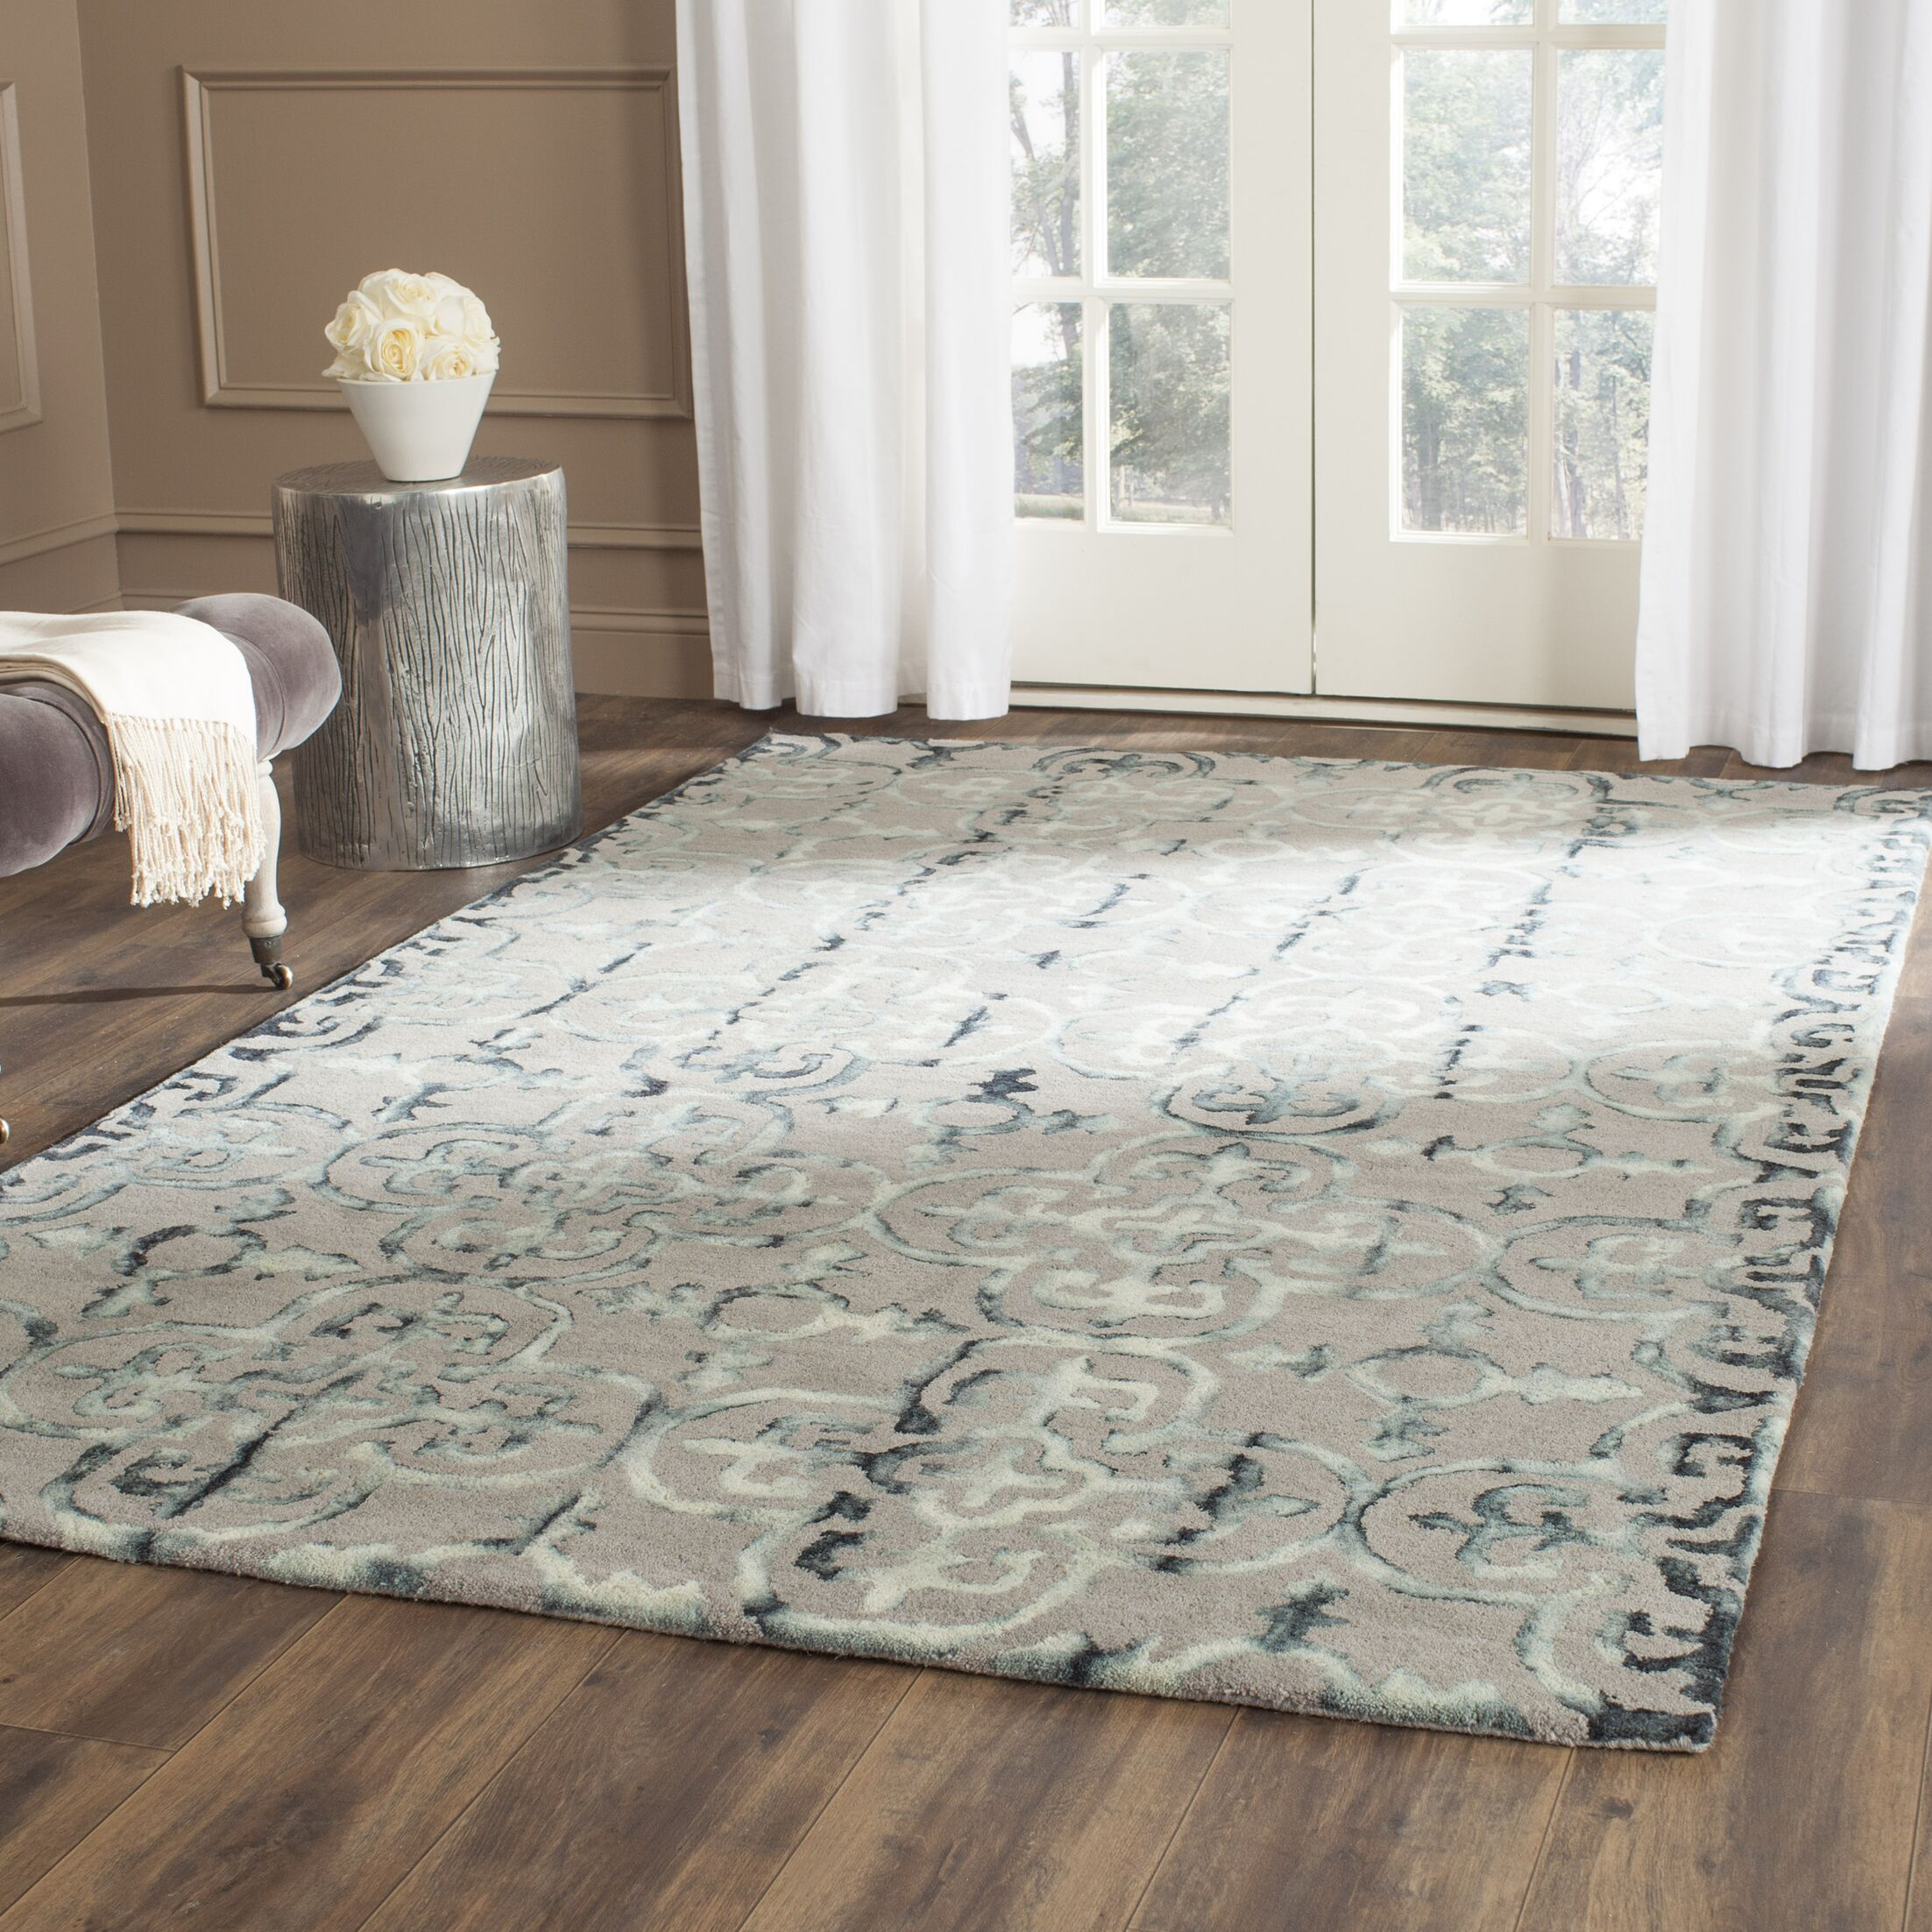 Kinder Hand-Tufted Gray/Charcoal Area Rug Rug Size: Round 5'